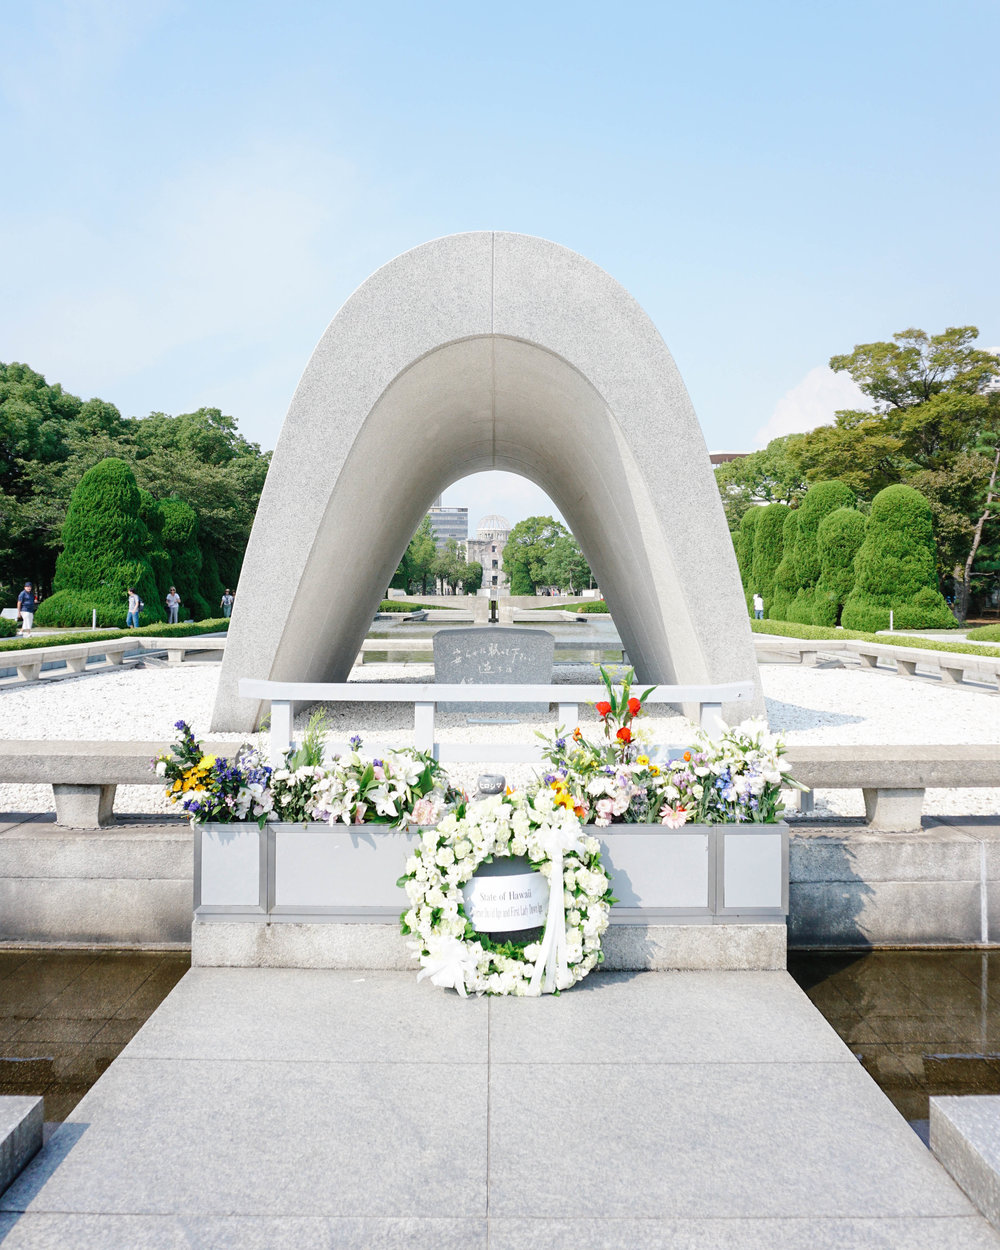 Memorial Cenotaph, Hiroshima Peace Memorial Park.